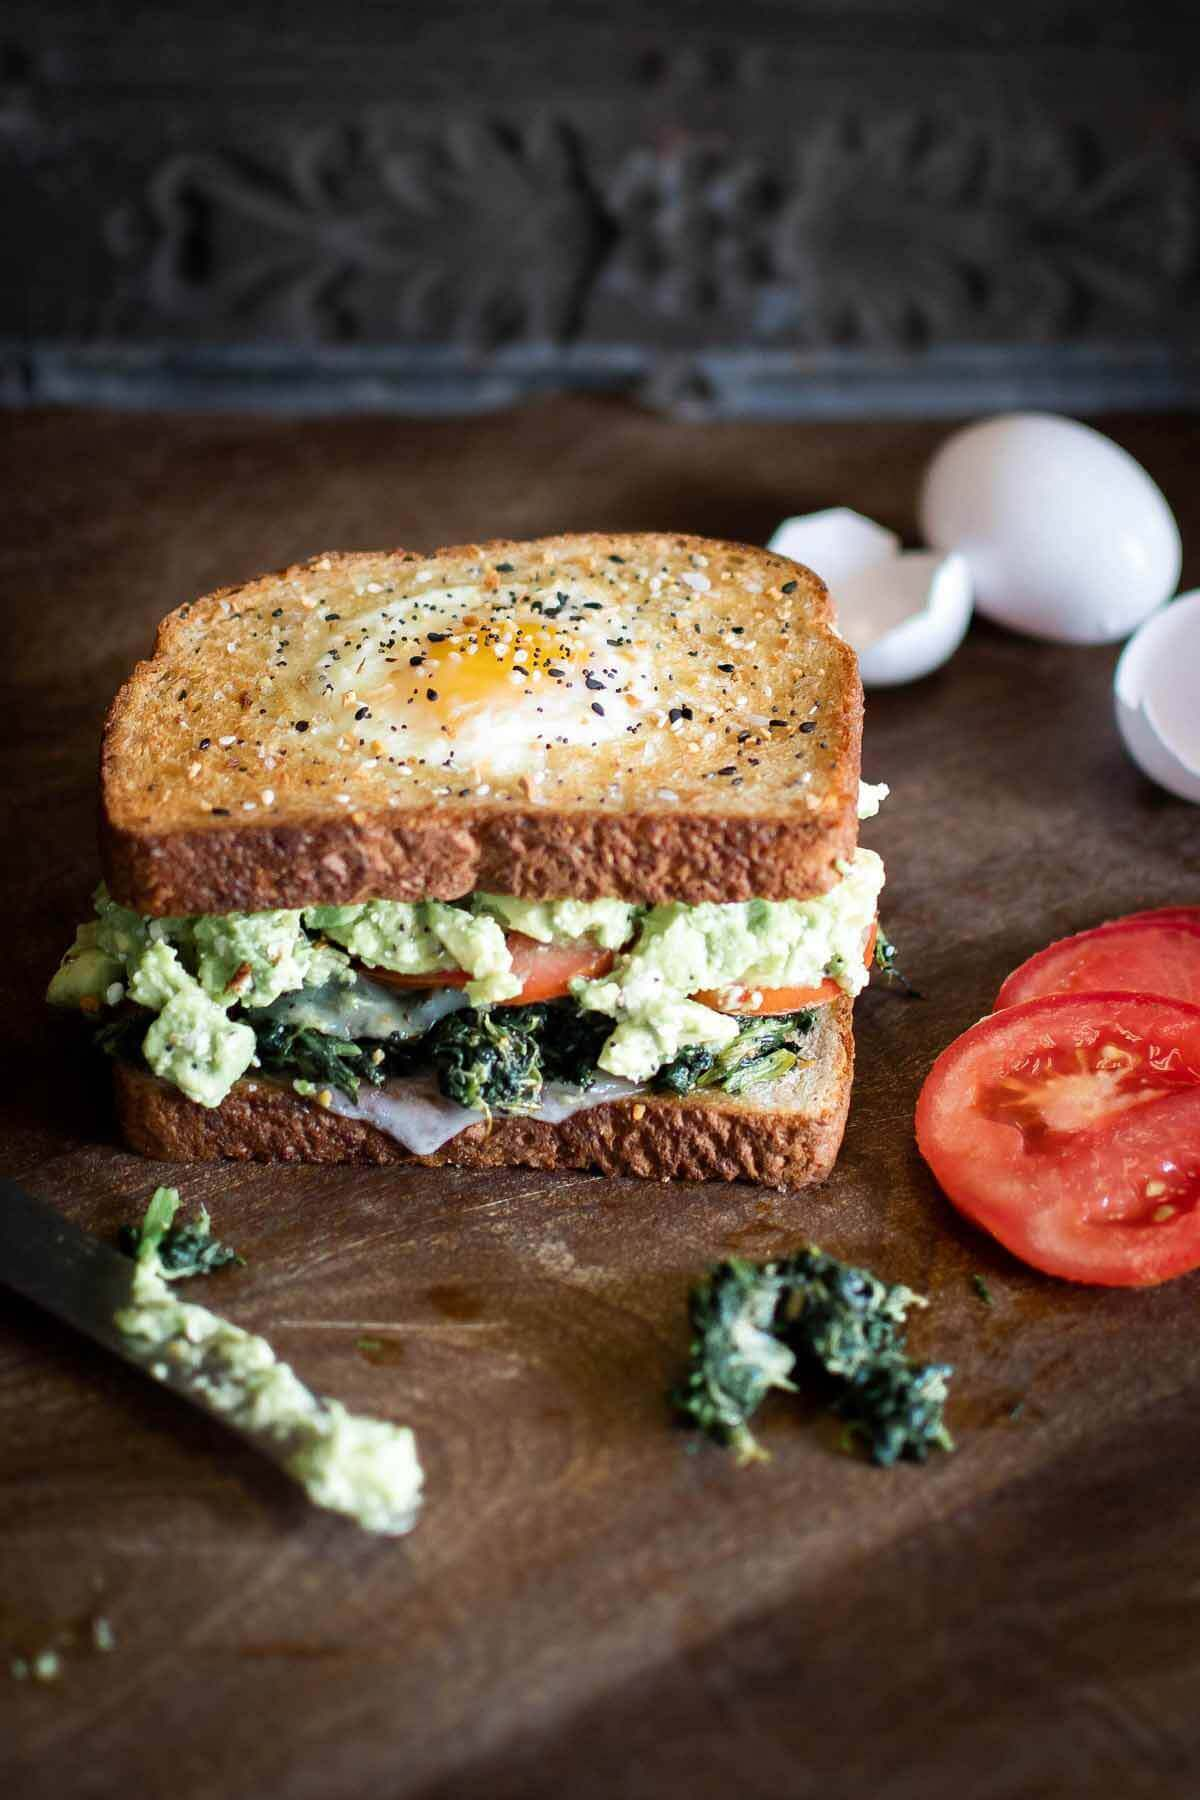 By the Brewery's Avocado Toasted sandwich